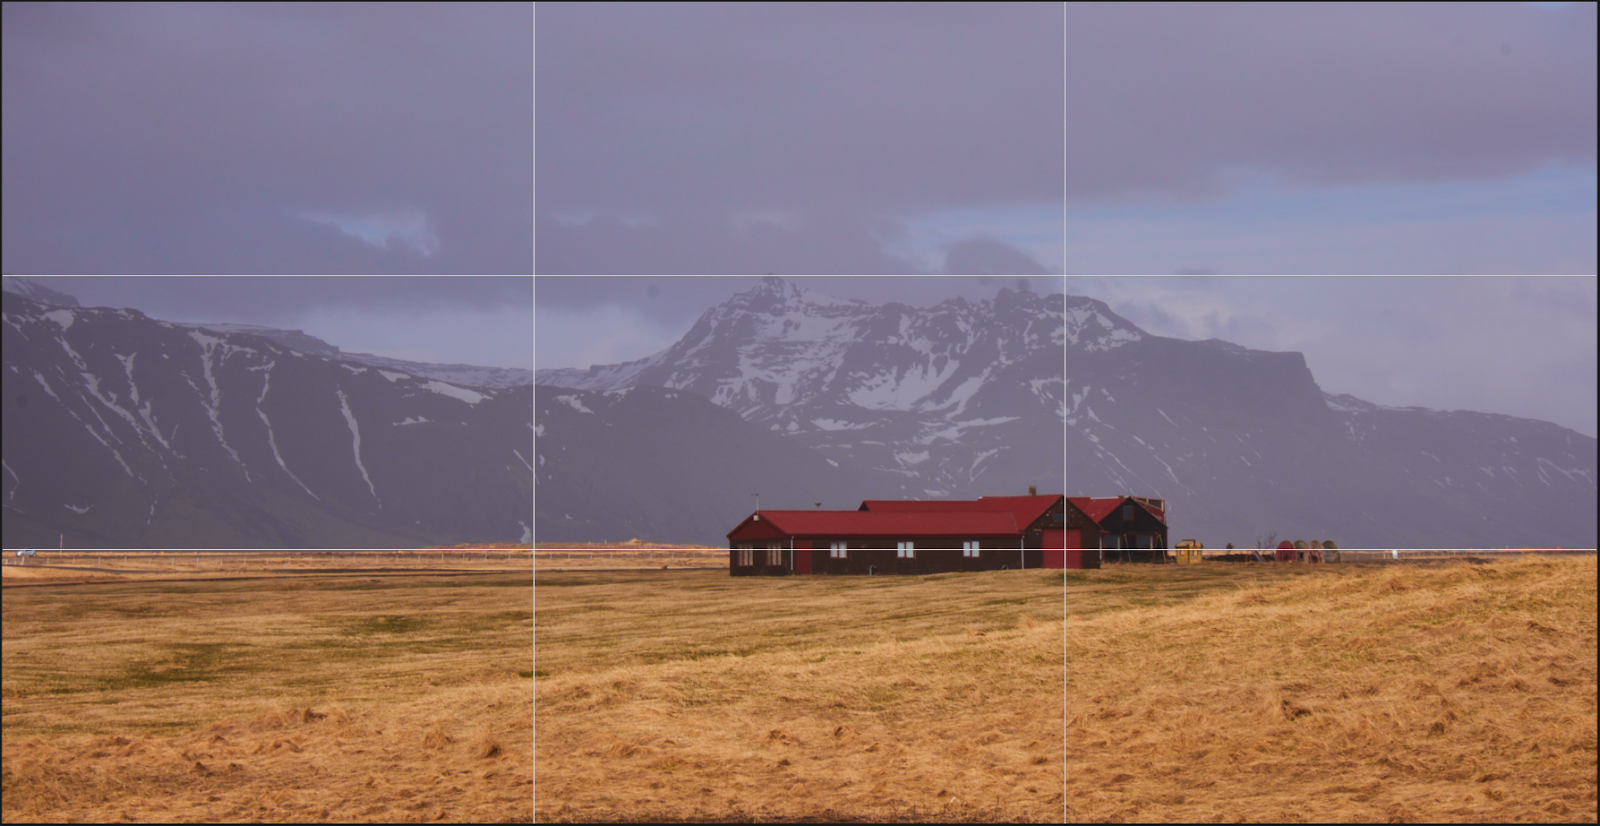 Iceland landscape with the rule of thirds